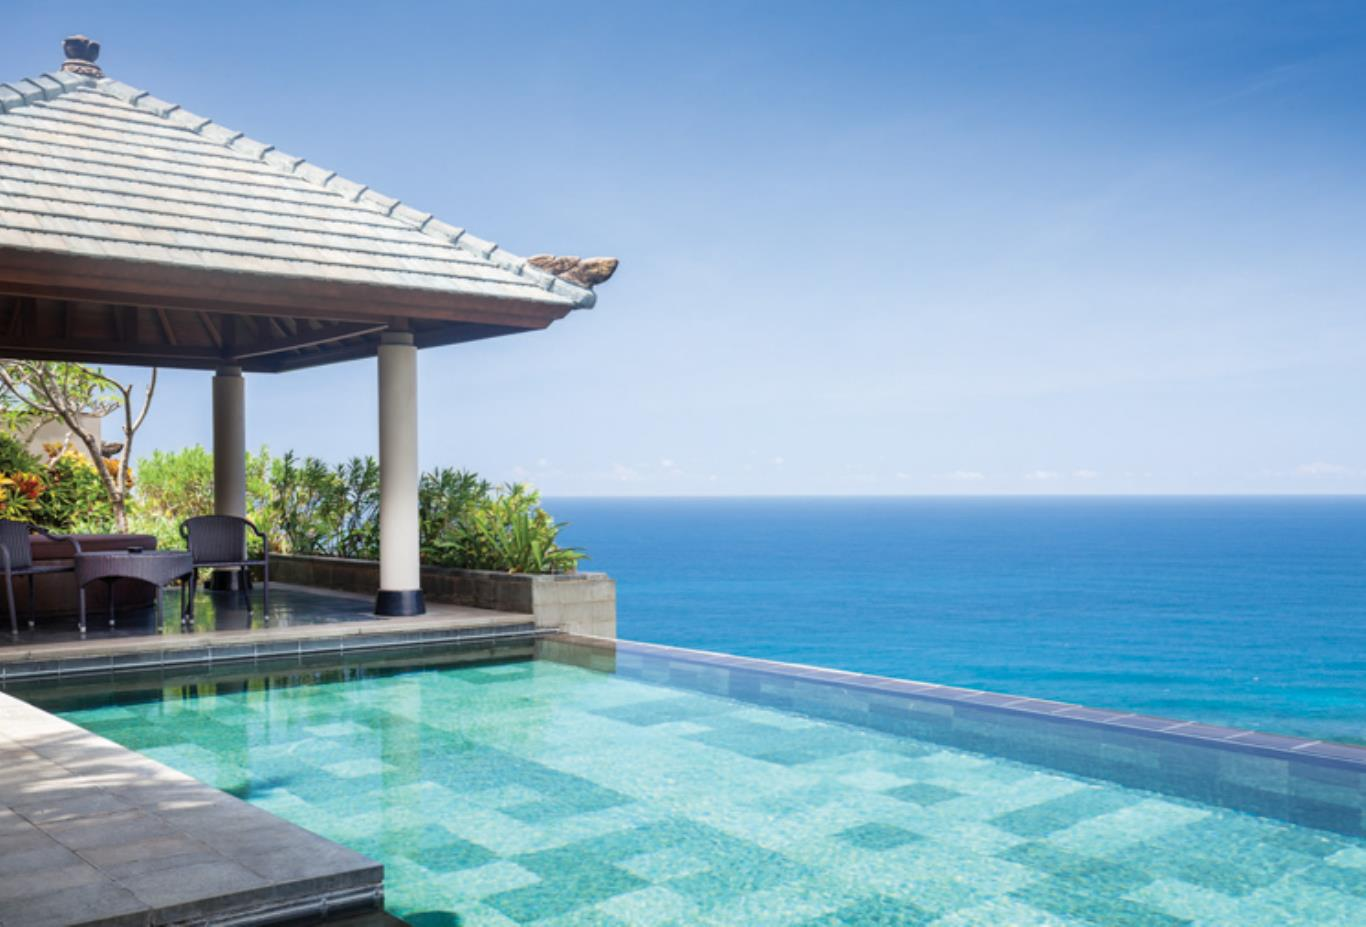 Pool Villa Cliff Edge pool